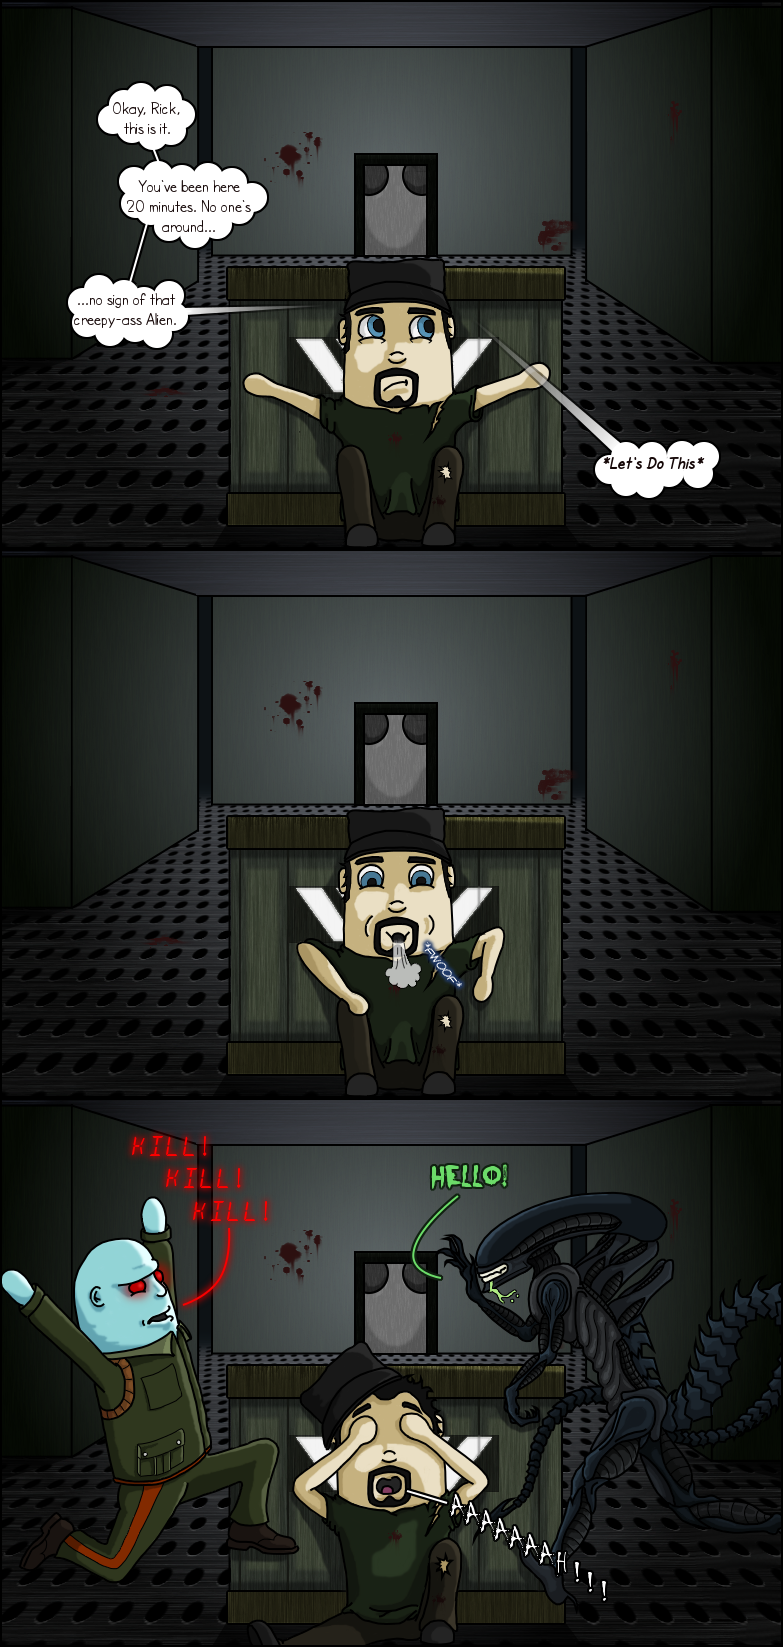 My Experience With 'Alien: Isolation' by RickVanOwen